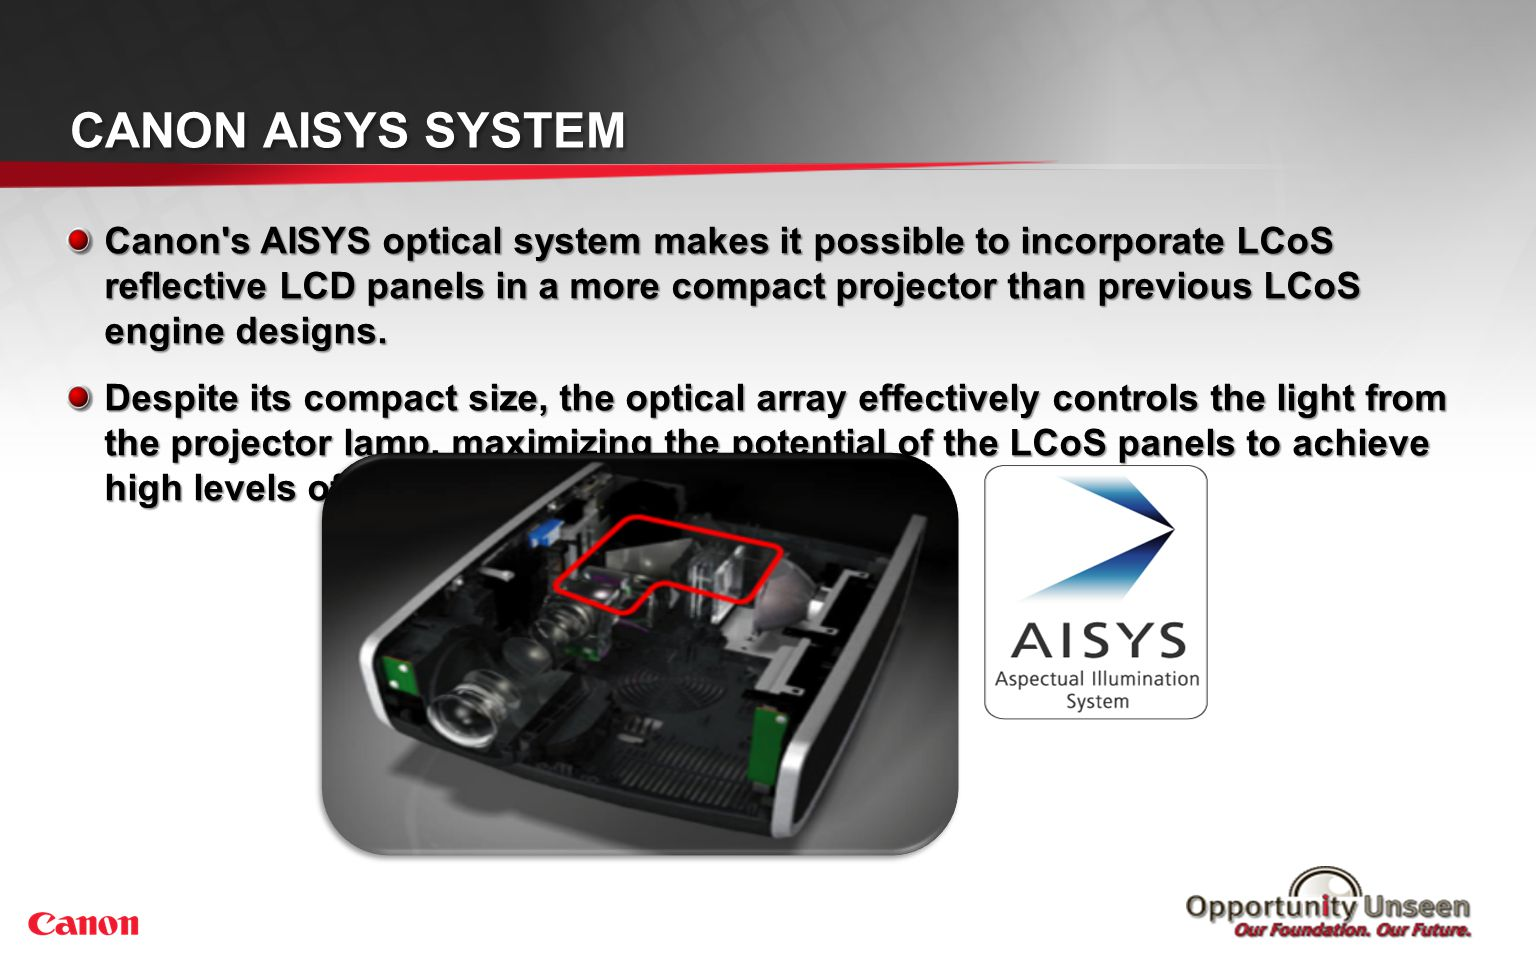 CANON AISYS SYSTEM Canon's AISYS optical system makes it possible to incorporate LCoS reflective LCD panels in a more compact projector than previous